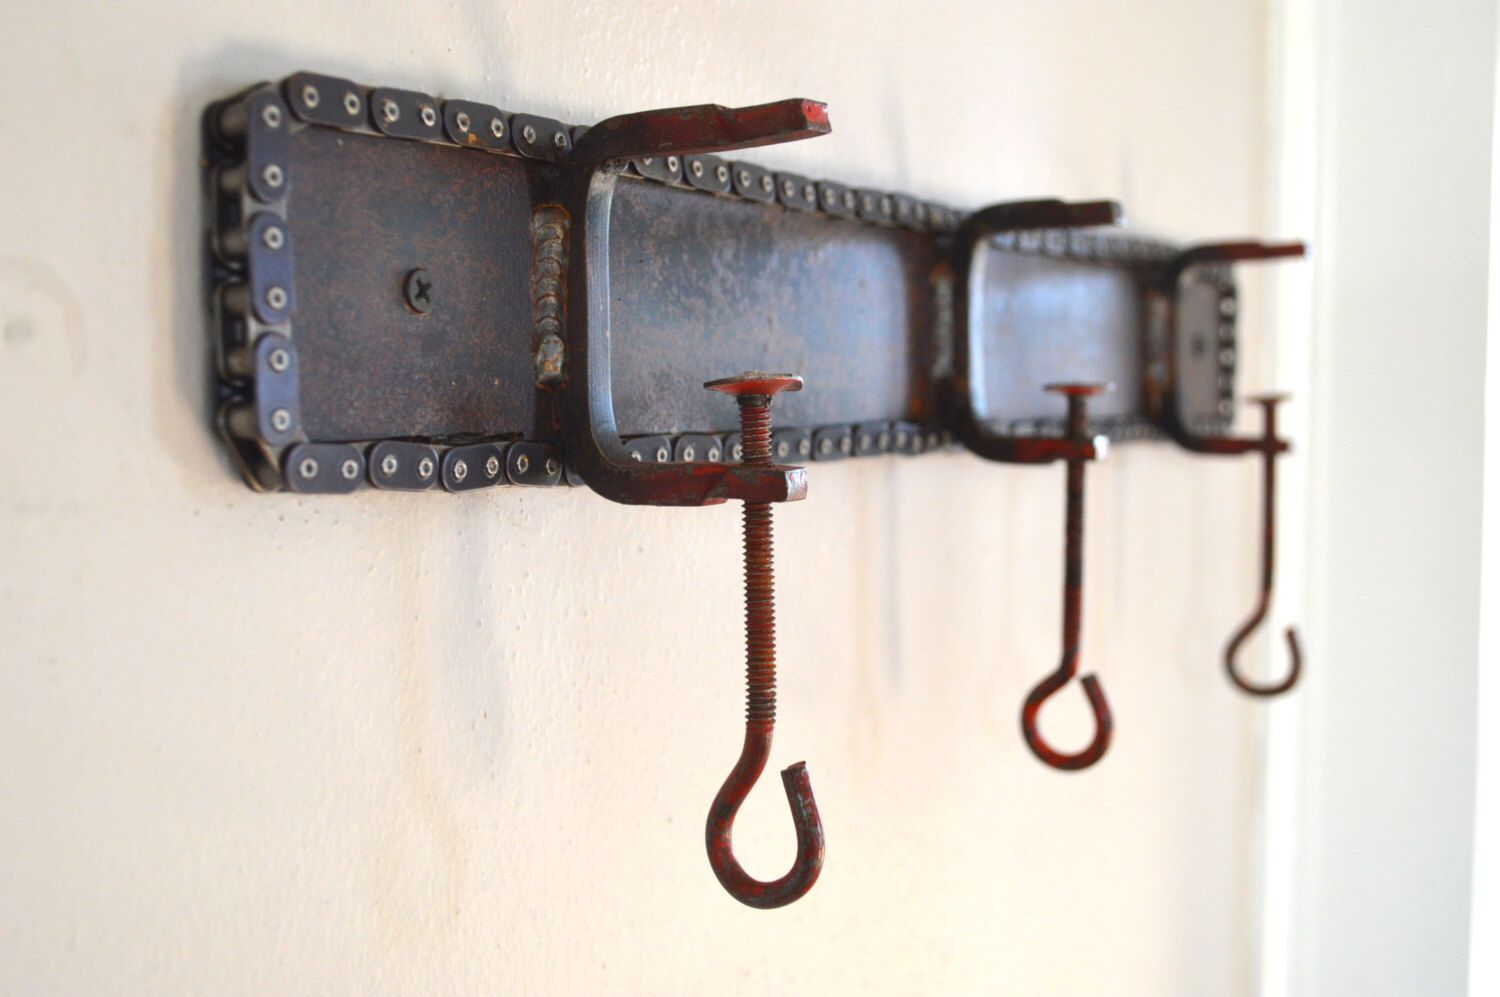 Unique Rustic Industrial Shelf w/ Chain Trim & Red Clamp Hooks  Reclaimed Rusty Metal Coat Rack, Purse Hook, Towel Rack, Hat Rack, Decor by DennisJohnIndustrial on Etsy https://www.etsy.com/listing/256430364/unique-rustic-industrial-shelf-w-chain